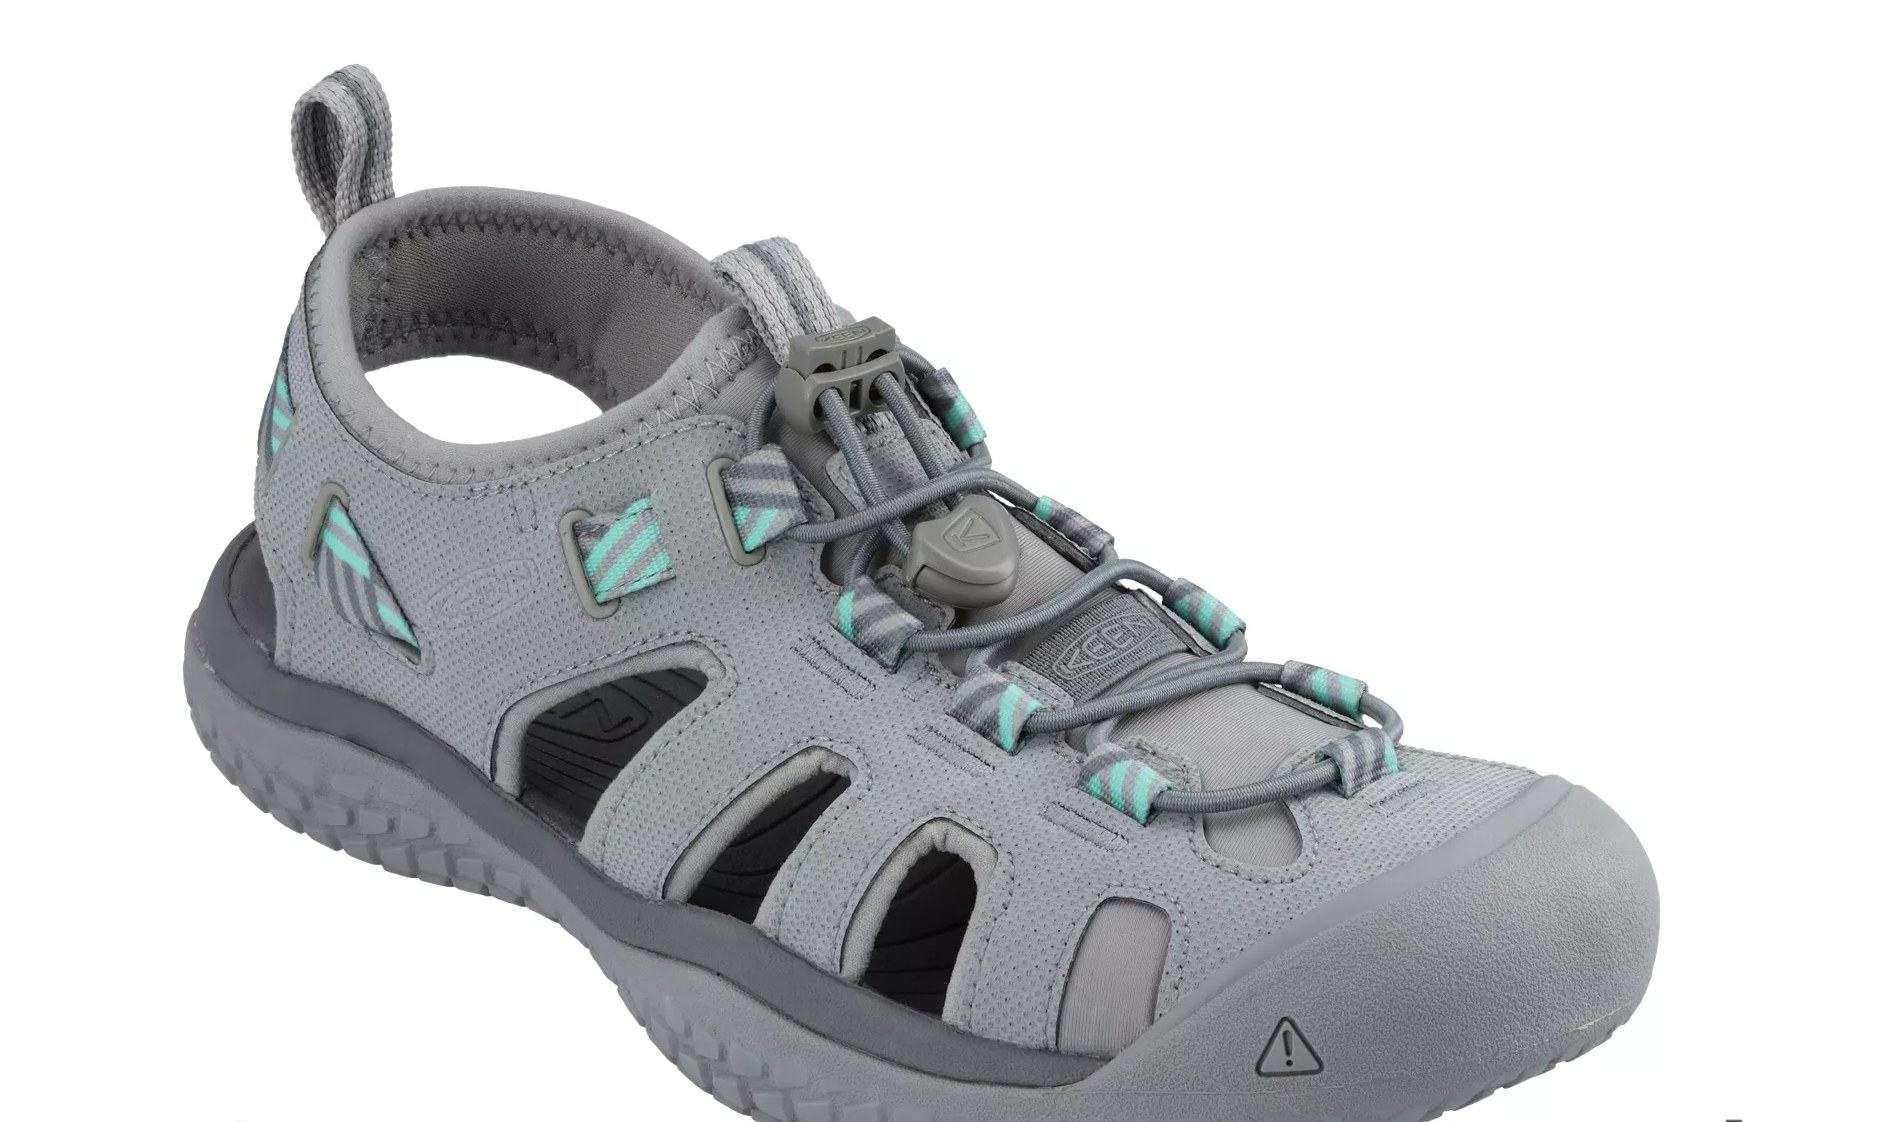 the pair of Keen whisper sandals in gray